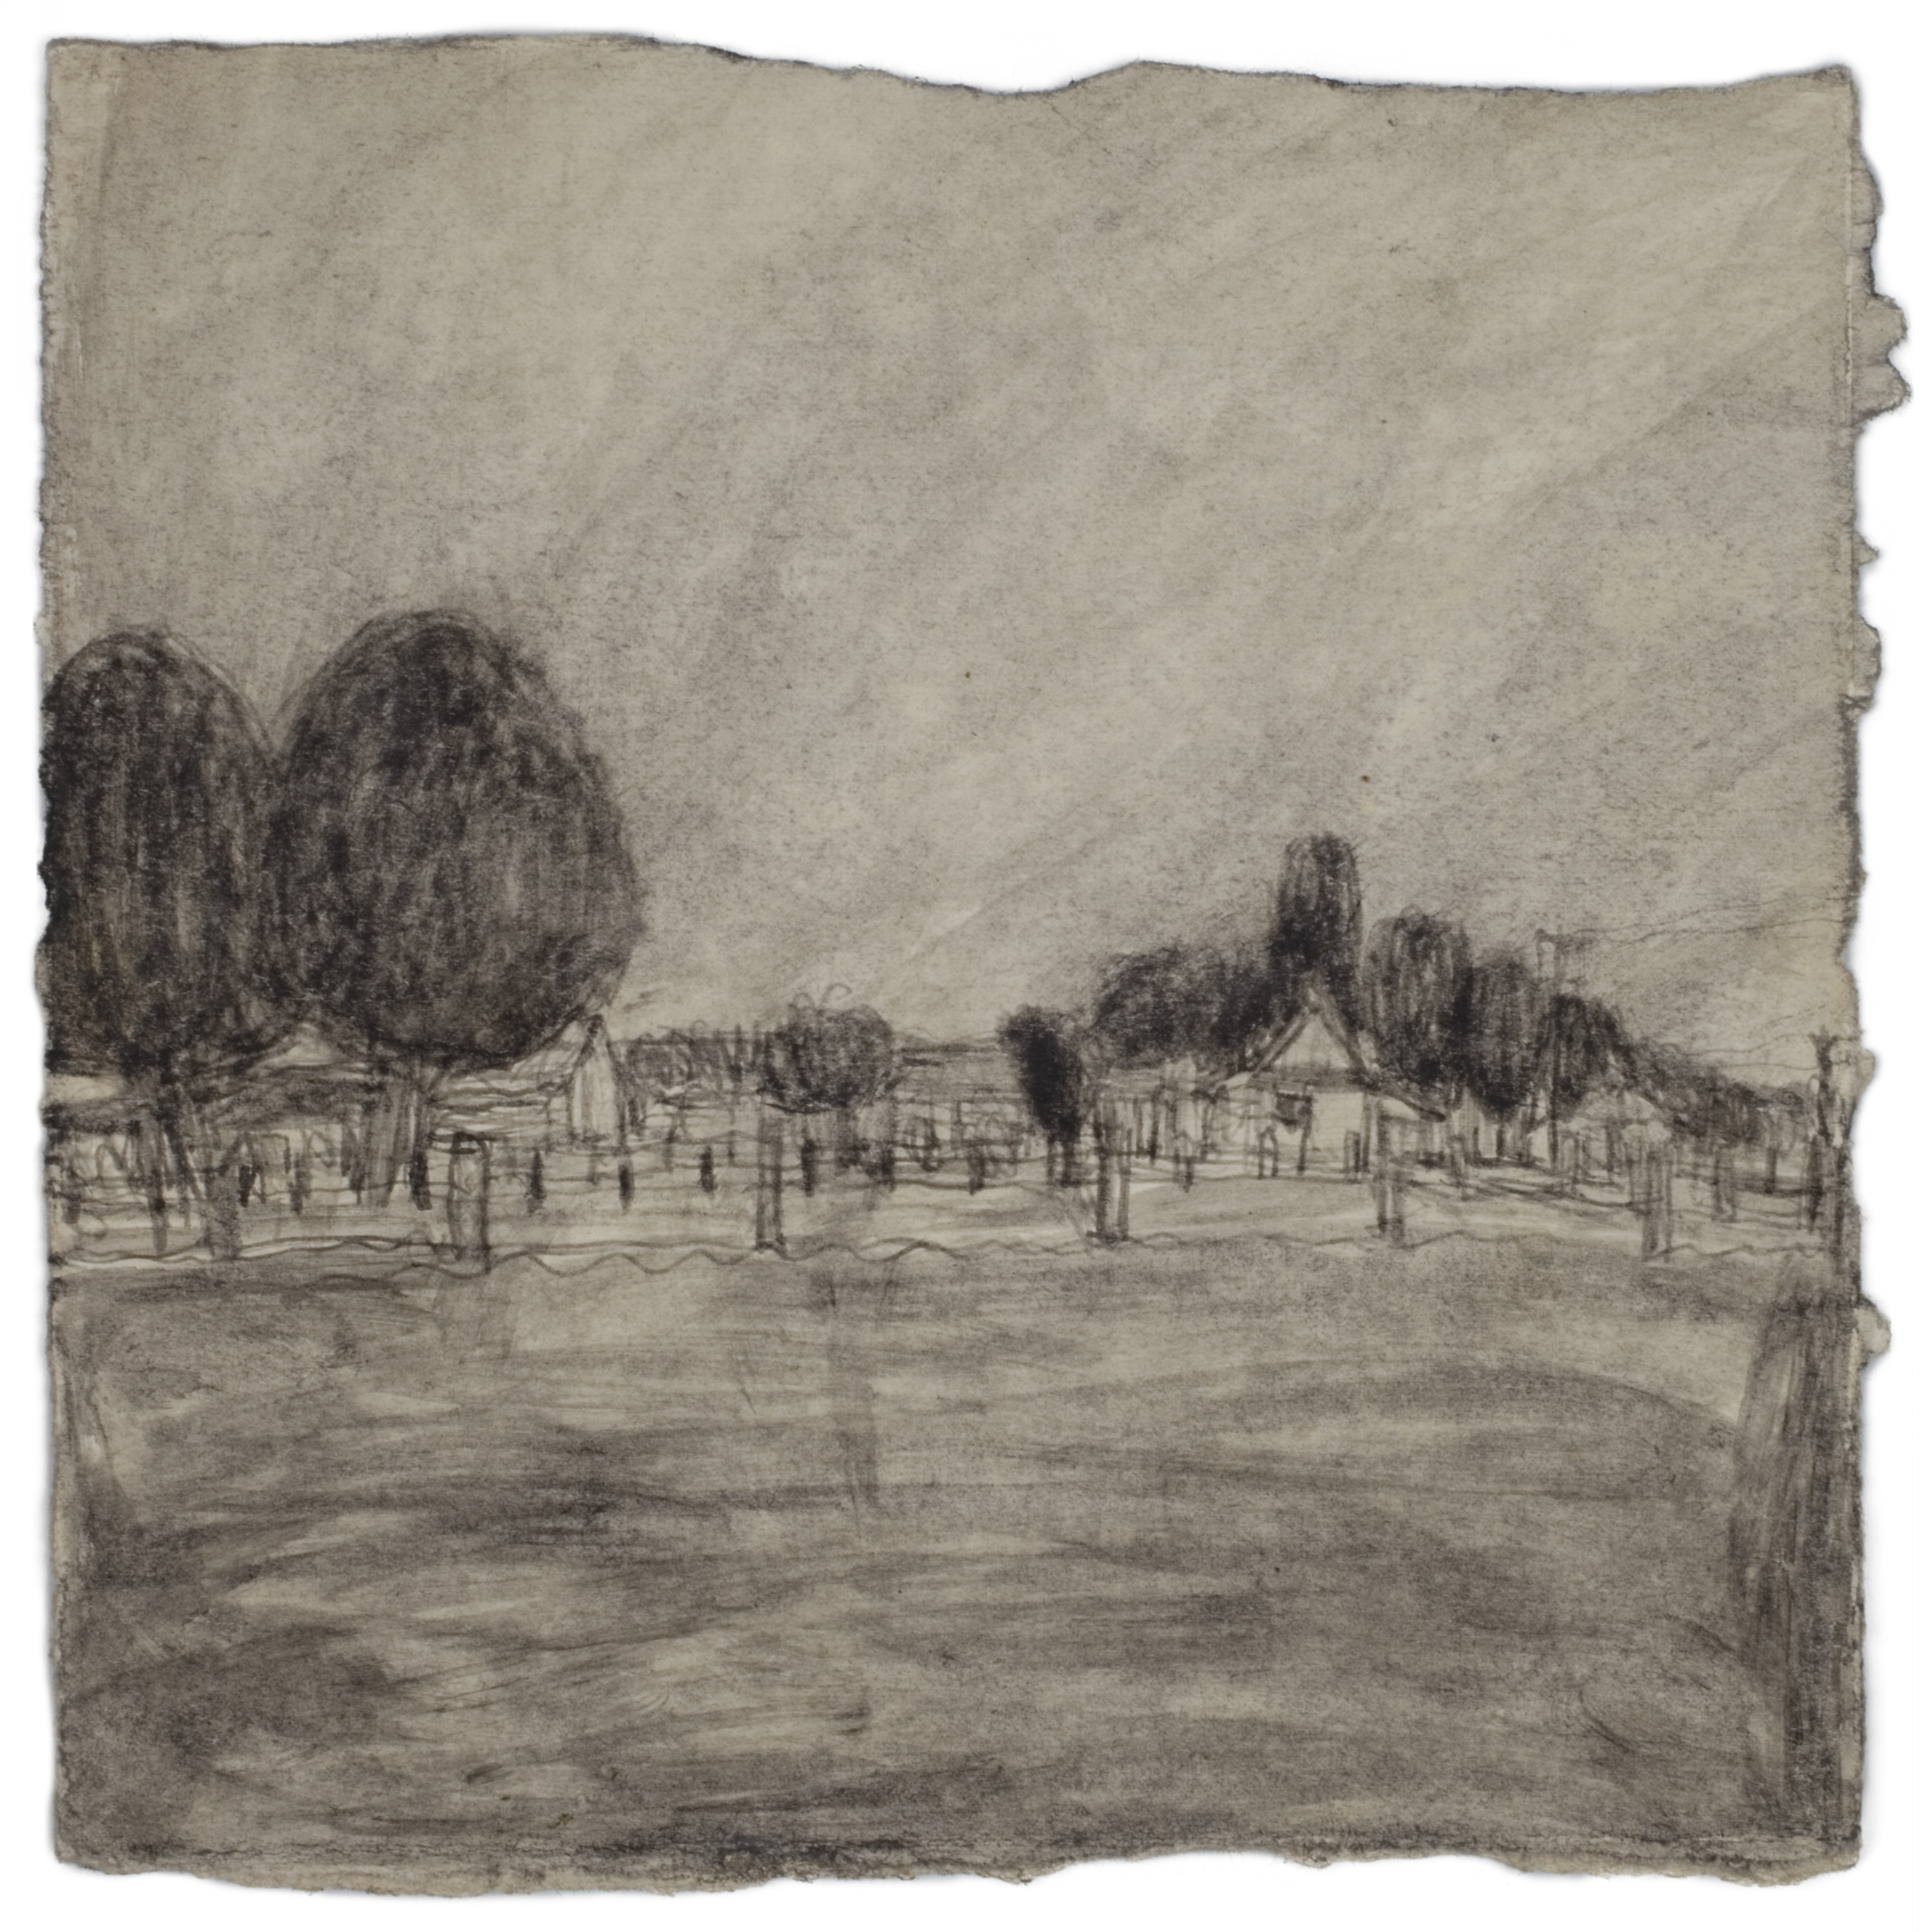 James Castle, Untitled (two sided drawing), Soot on paper